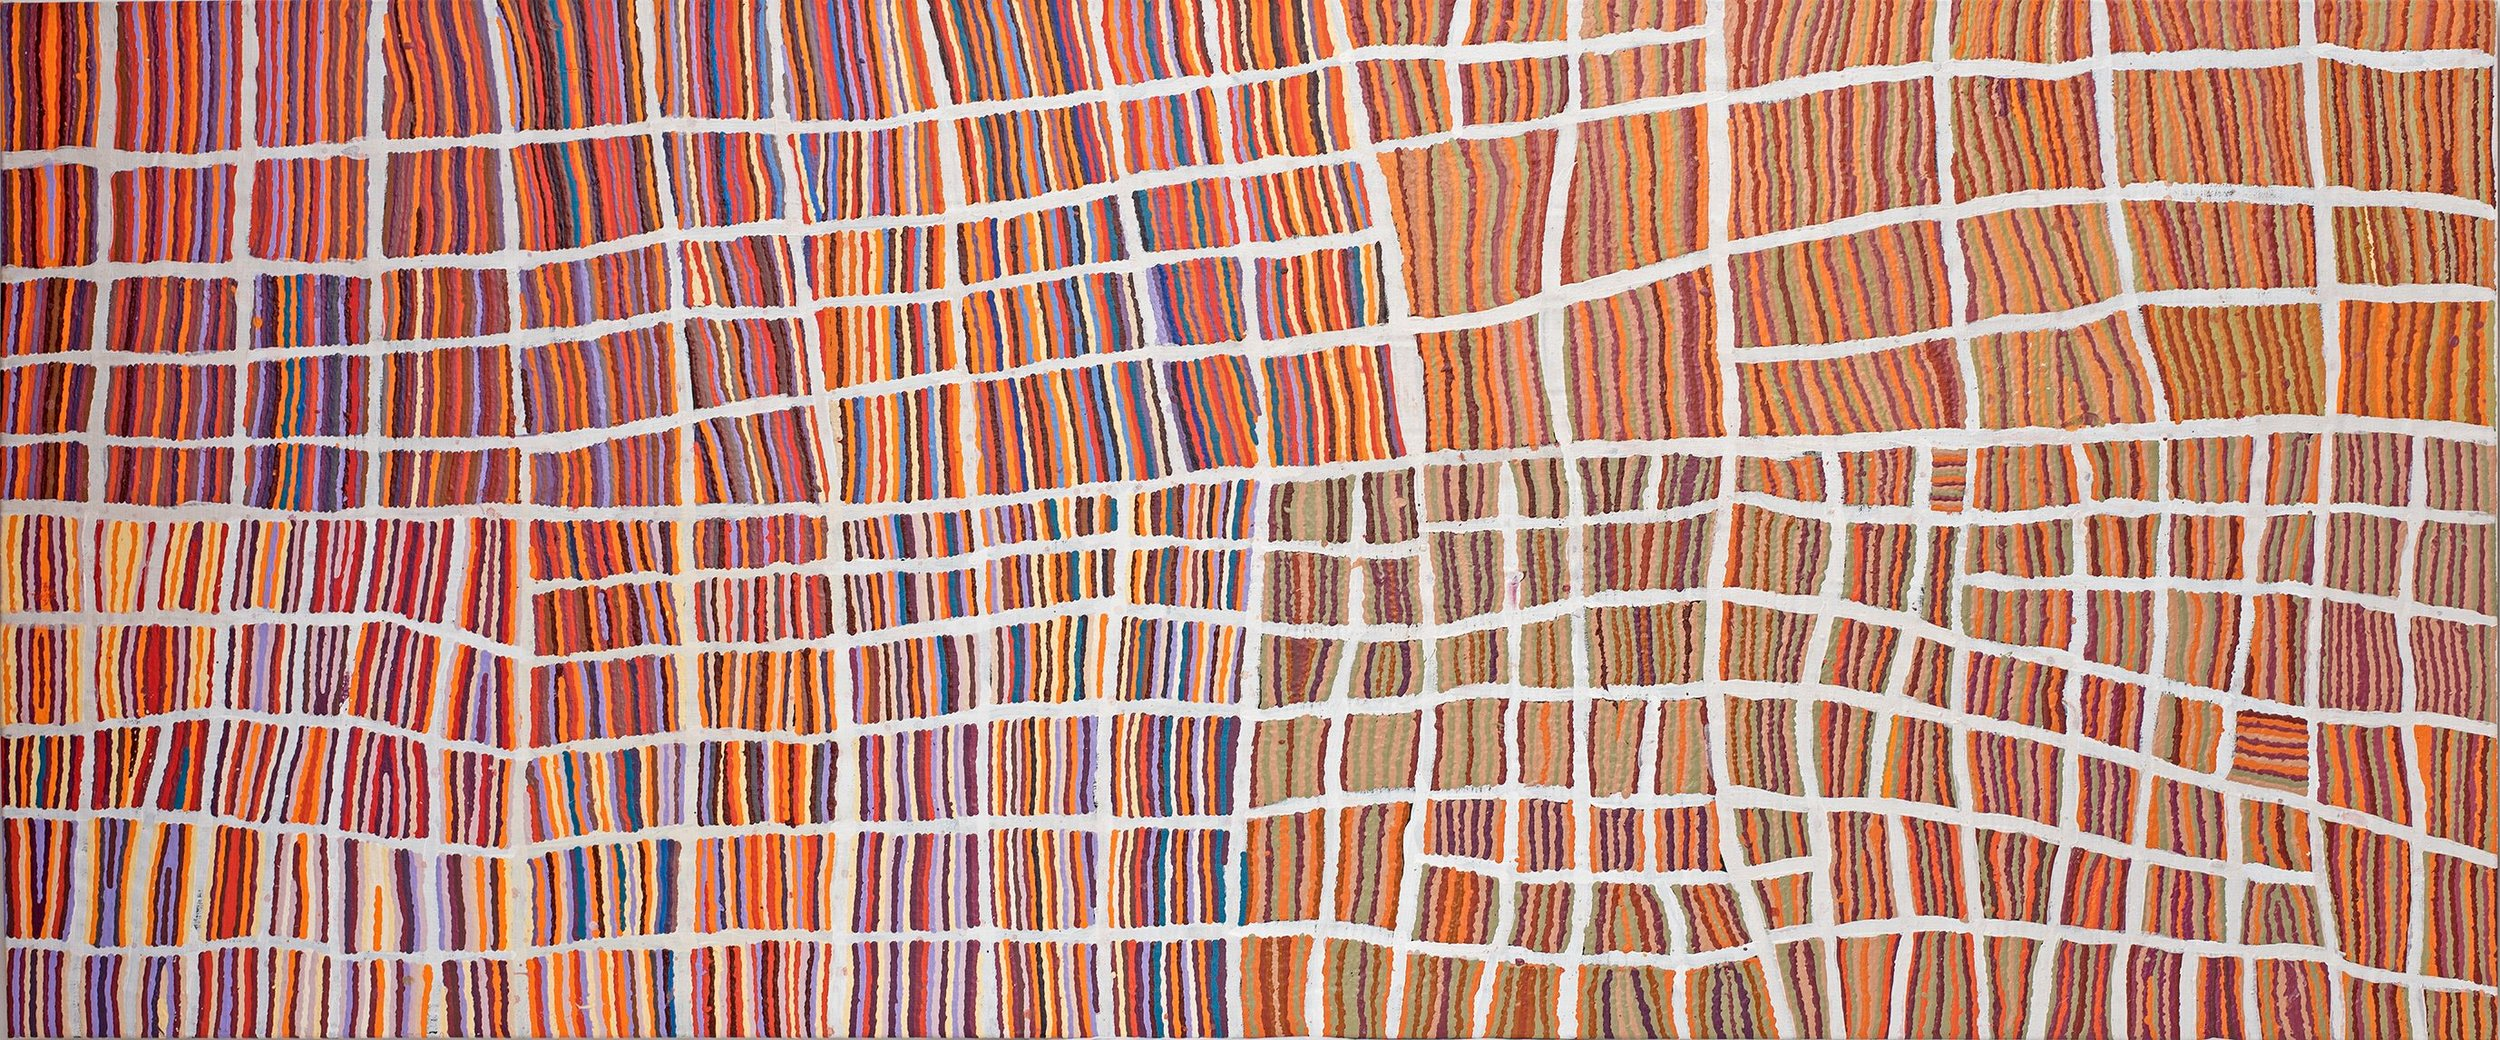 Œuvre collaborative majeure de Wokka Taylor (1939) et Nancy Karnu Taylor (1941). Titre : Jantinti. Format : 300 x 122 cm. ref : 18-150. © Photo : Aboriginal Signature Estrangin gallery with the courtesy of the artists and Martumili.    Plus d'informations sur cette peinture d'art Aborigène.